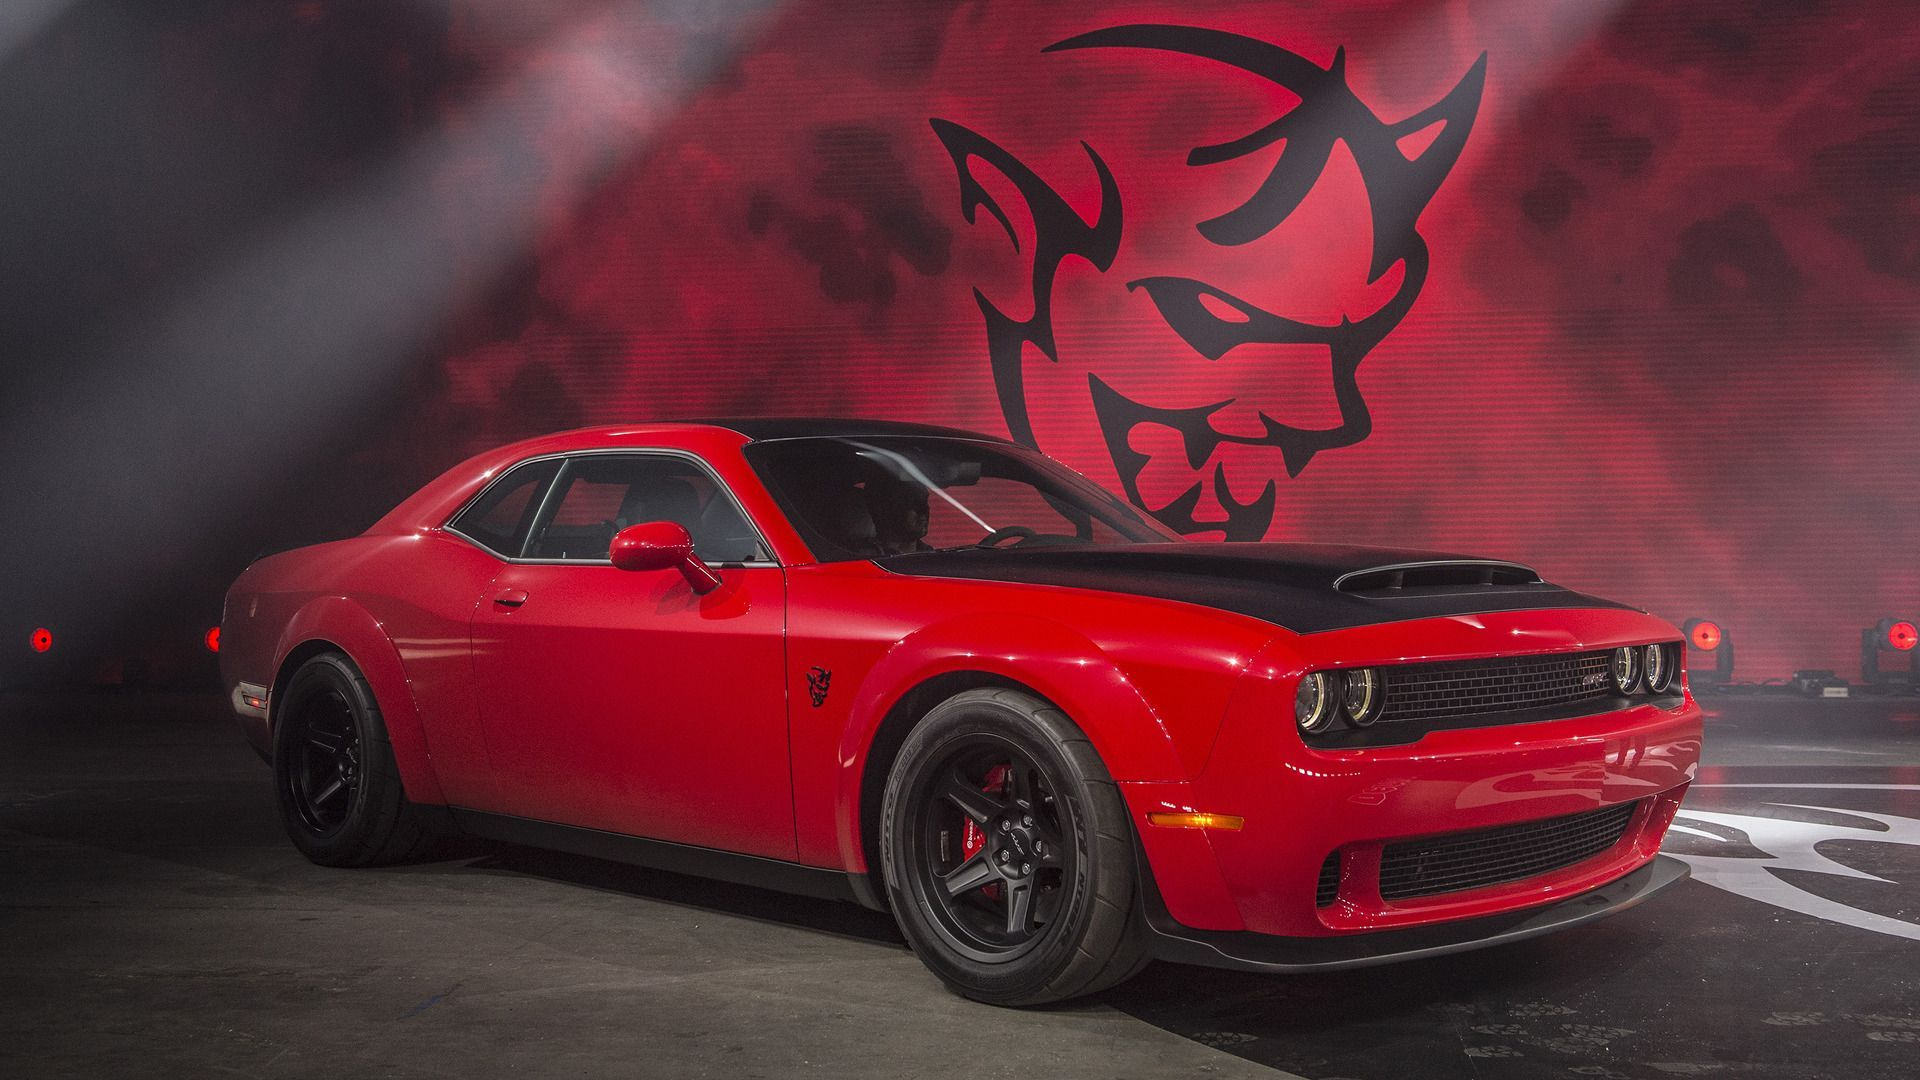 2018 Charger Demon >> 2018 Dodge Challenger SRT Demon Wallpaper - 2018 Wallpapers HD | Cool American Cars | Pinterest ...